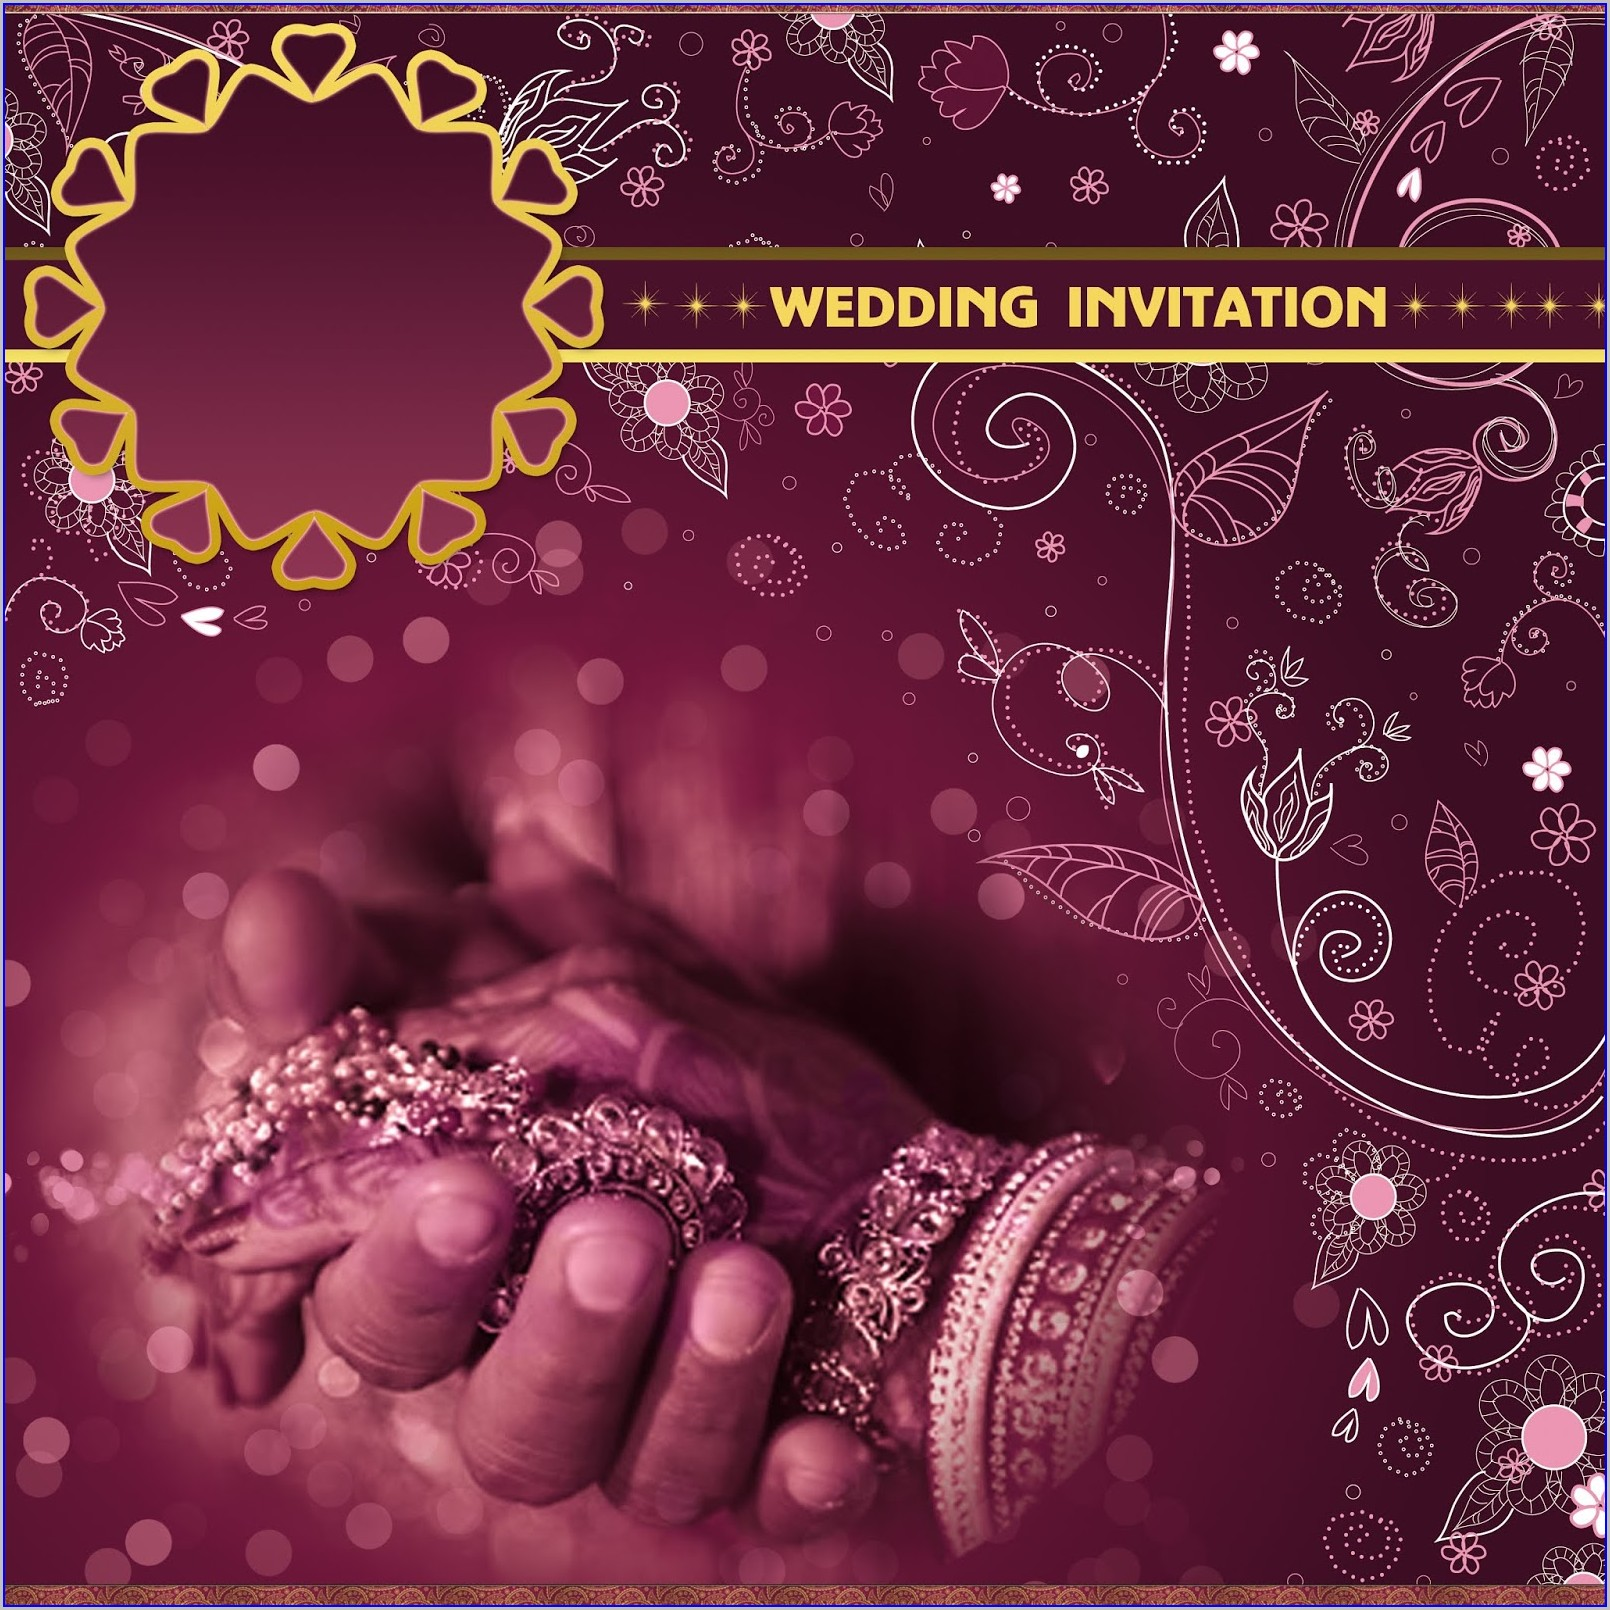 Hindu Wedding Invitation Templates Indian